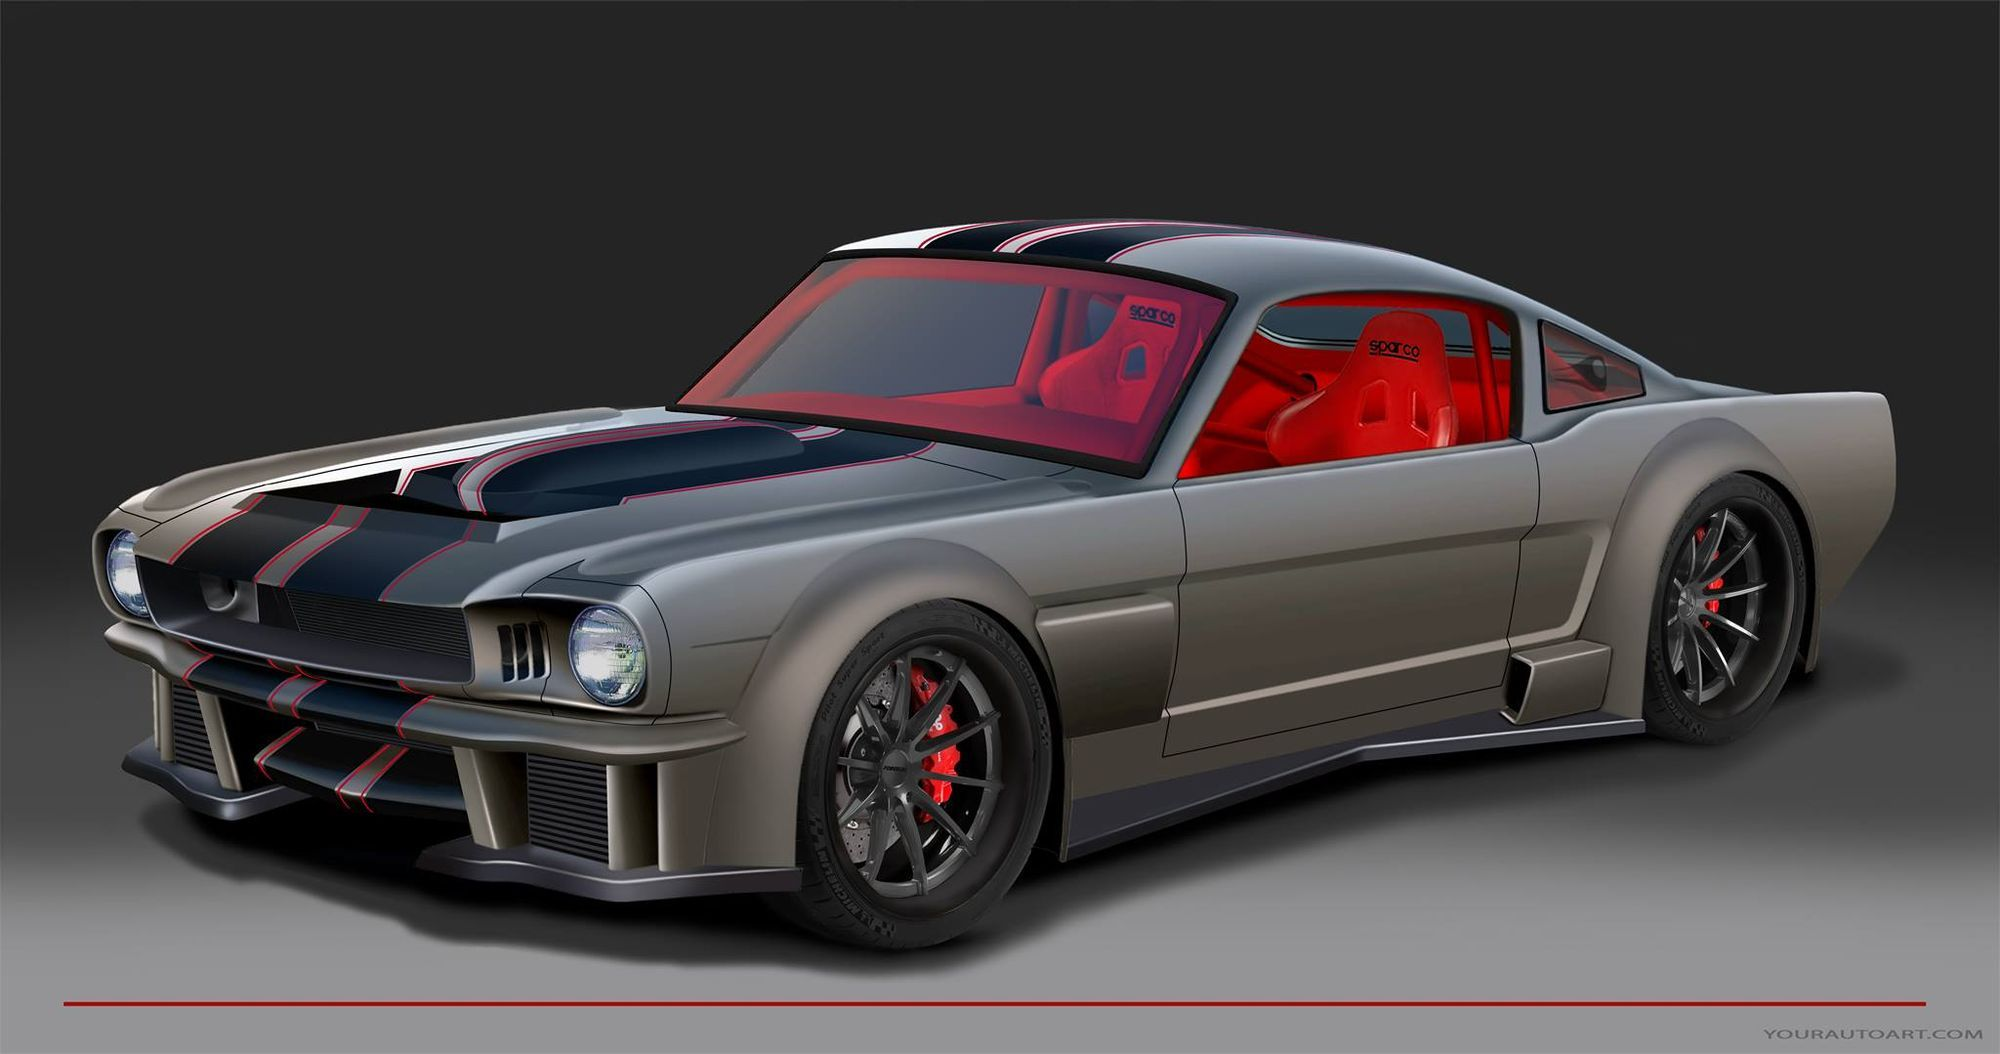 2016 sema show preview the timeless kustoms vicious 65 ford mustang on forgeline gt3c wheels